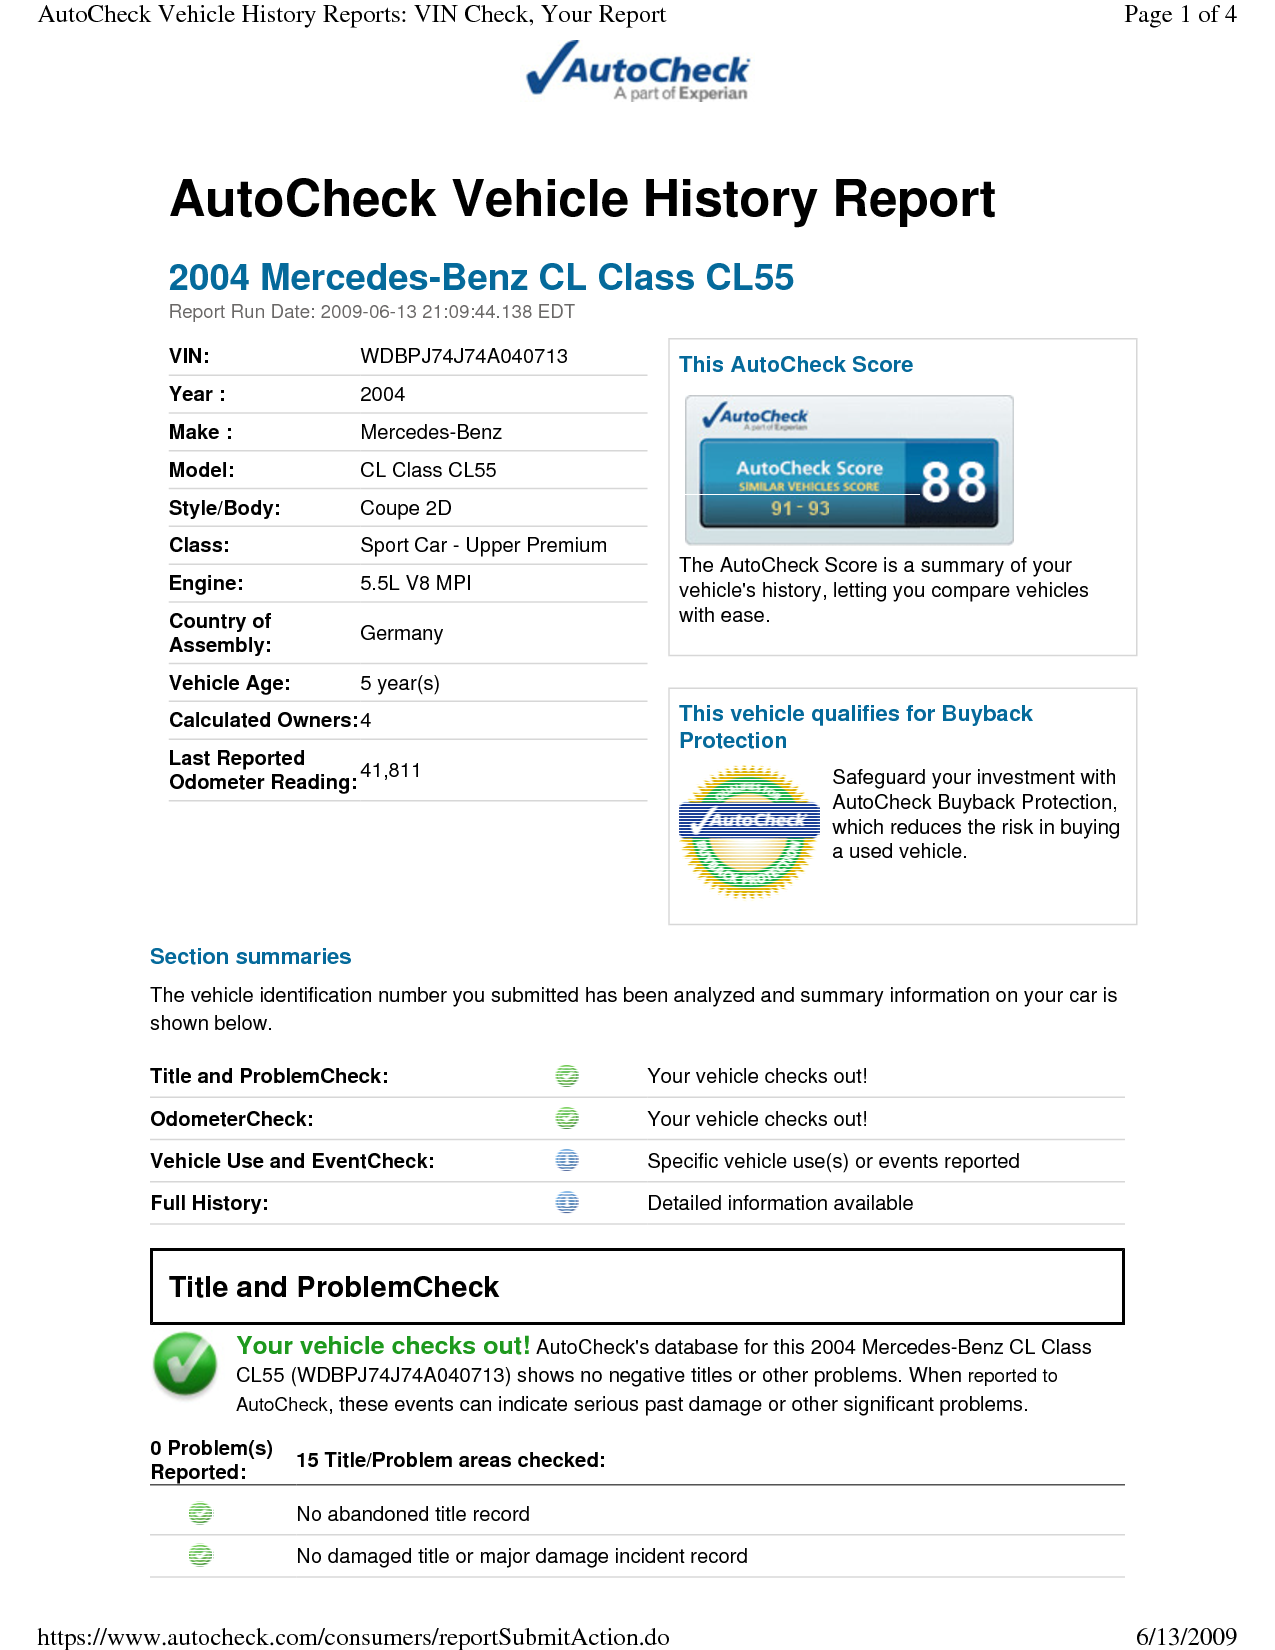 Carfax Vehicle History Report Lovely Carfax Vs Autocheck Reports What You Don T Know